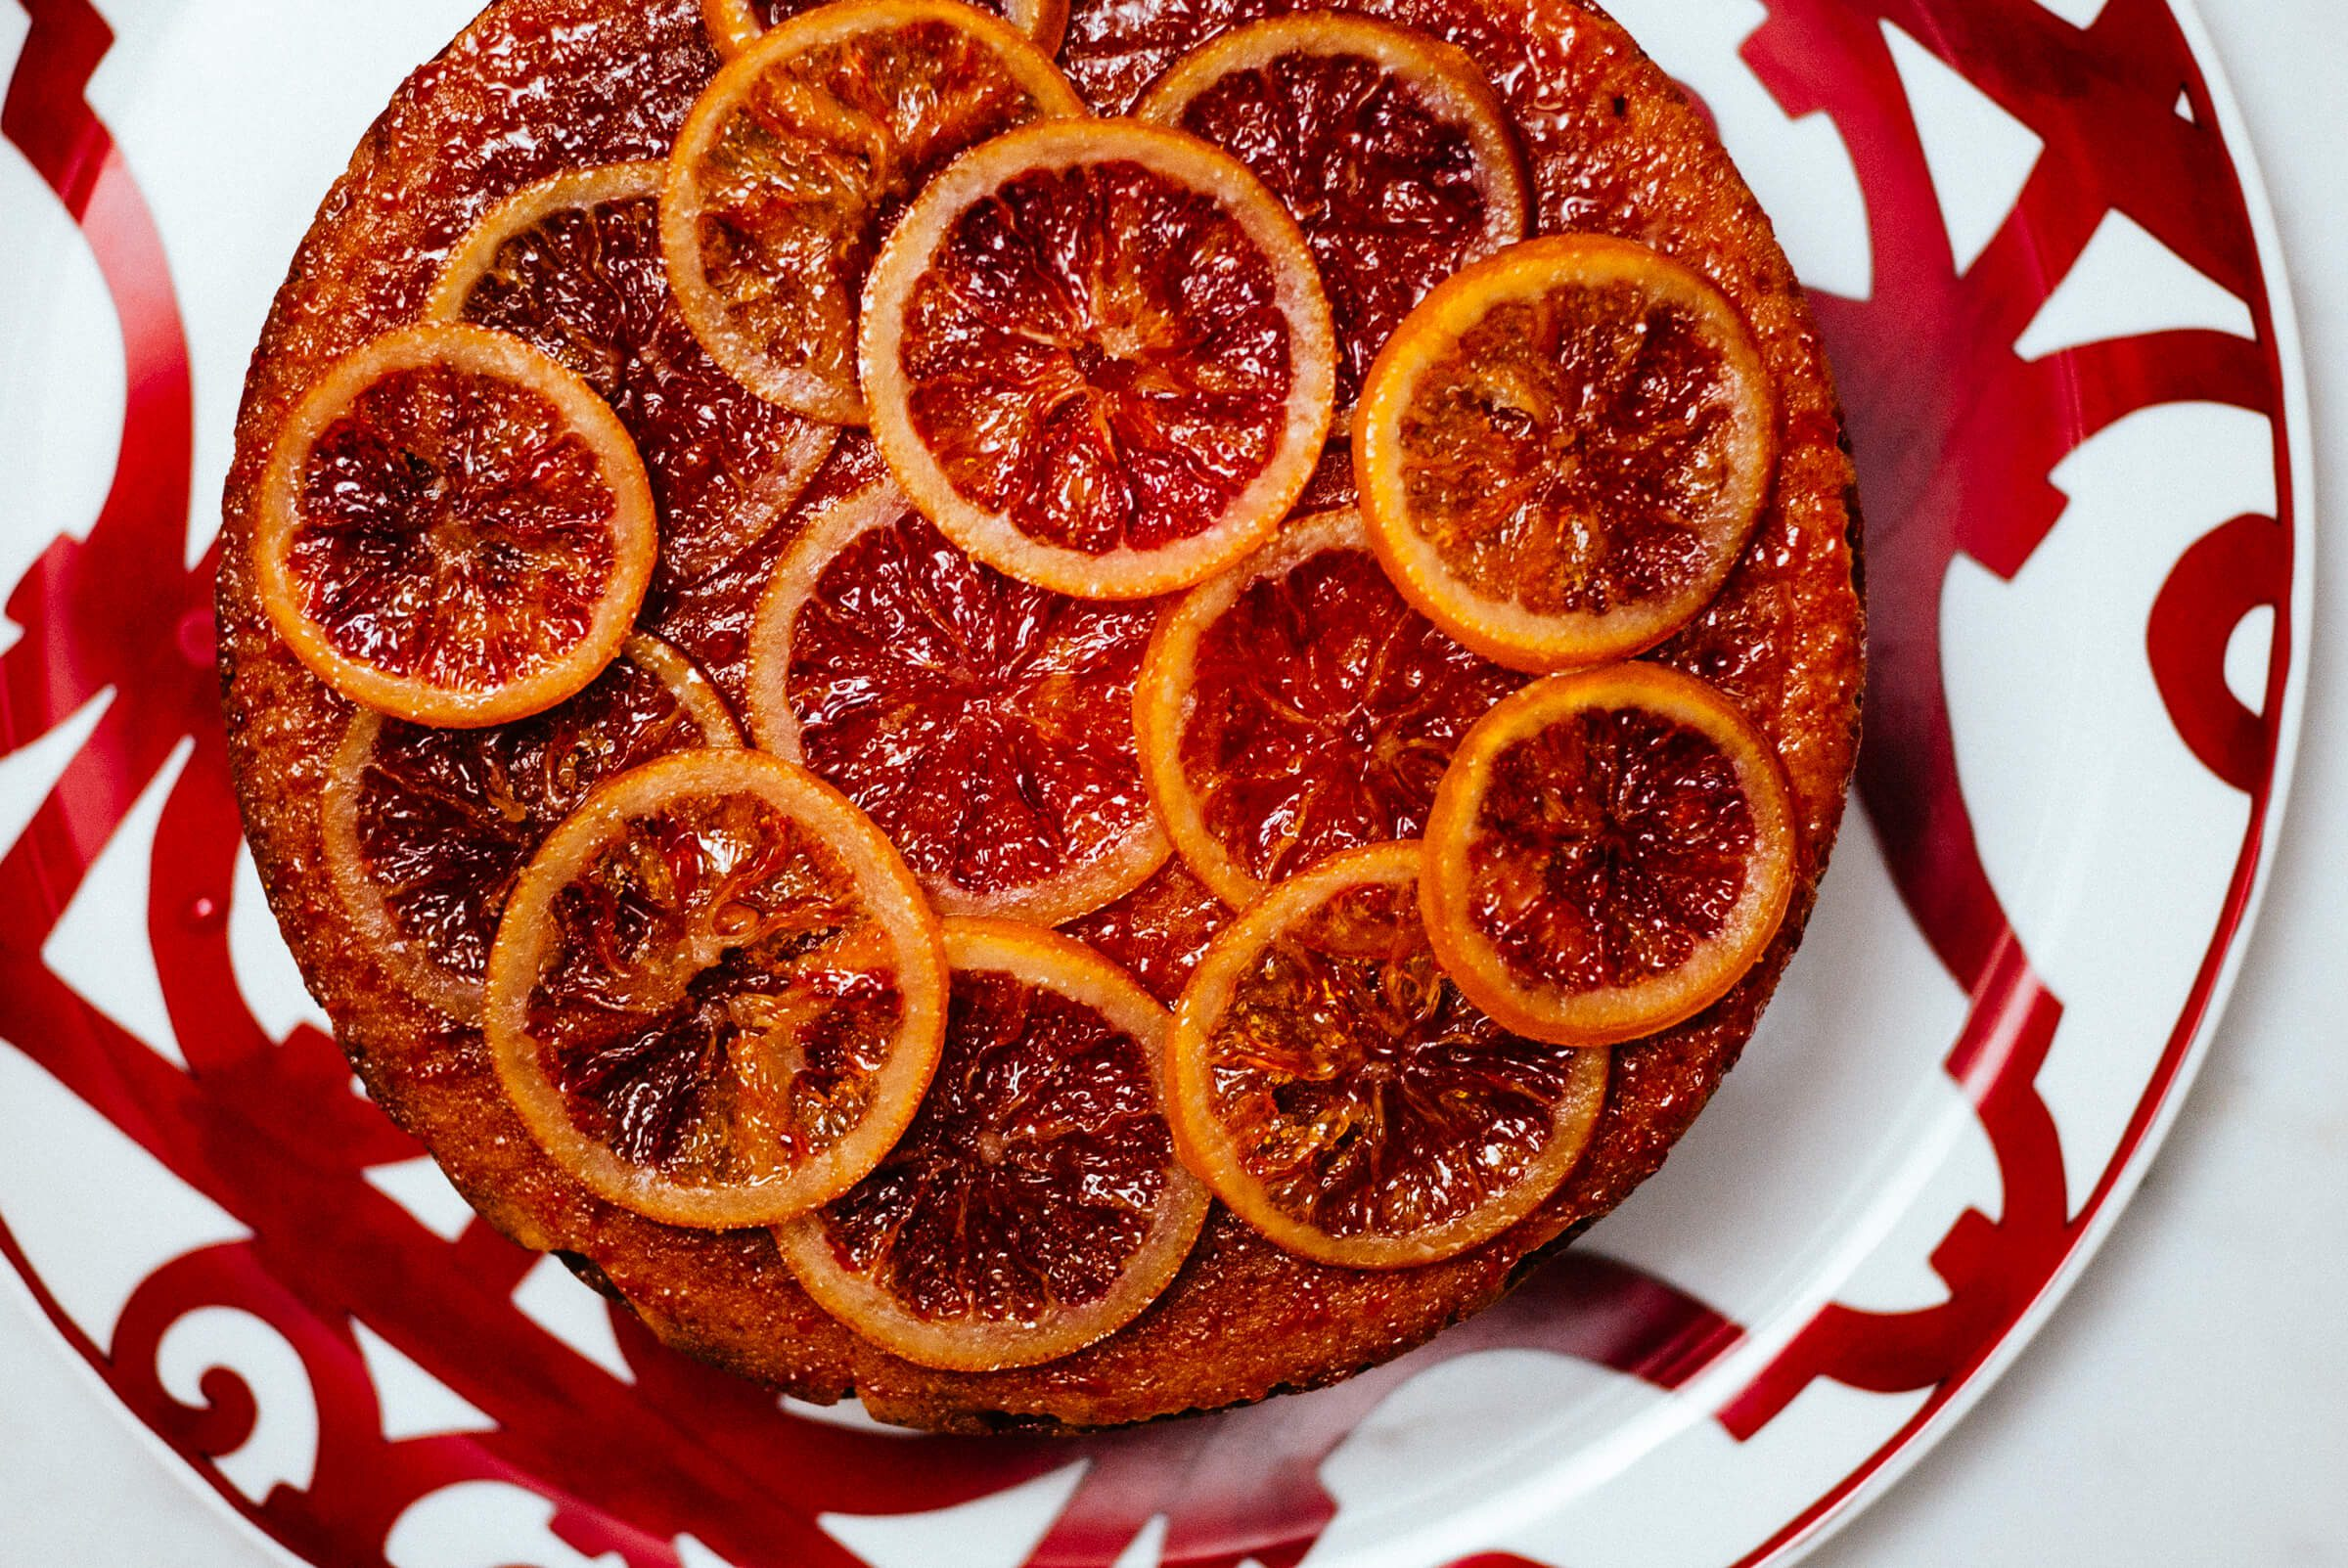 The Taste SF uses Chef'n measure up measuring glasses to make a blood orange campari cake topped with homemade candied oranges